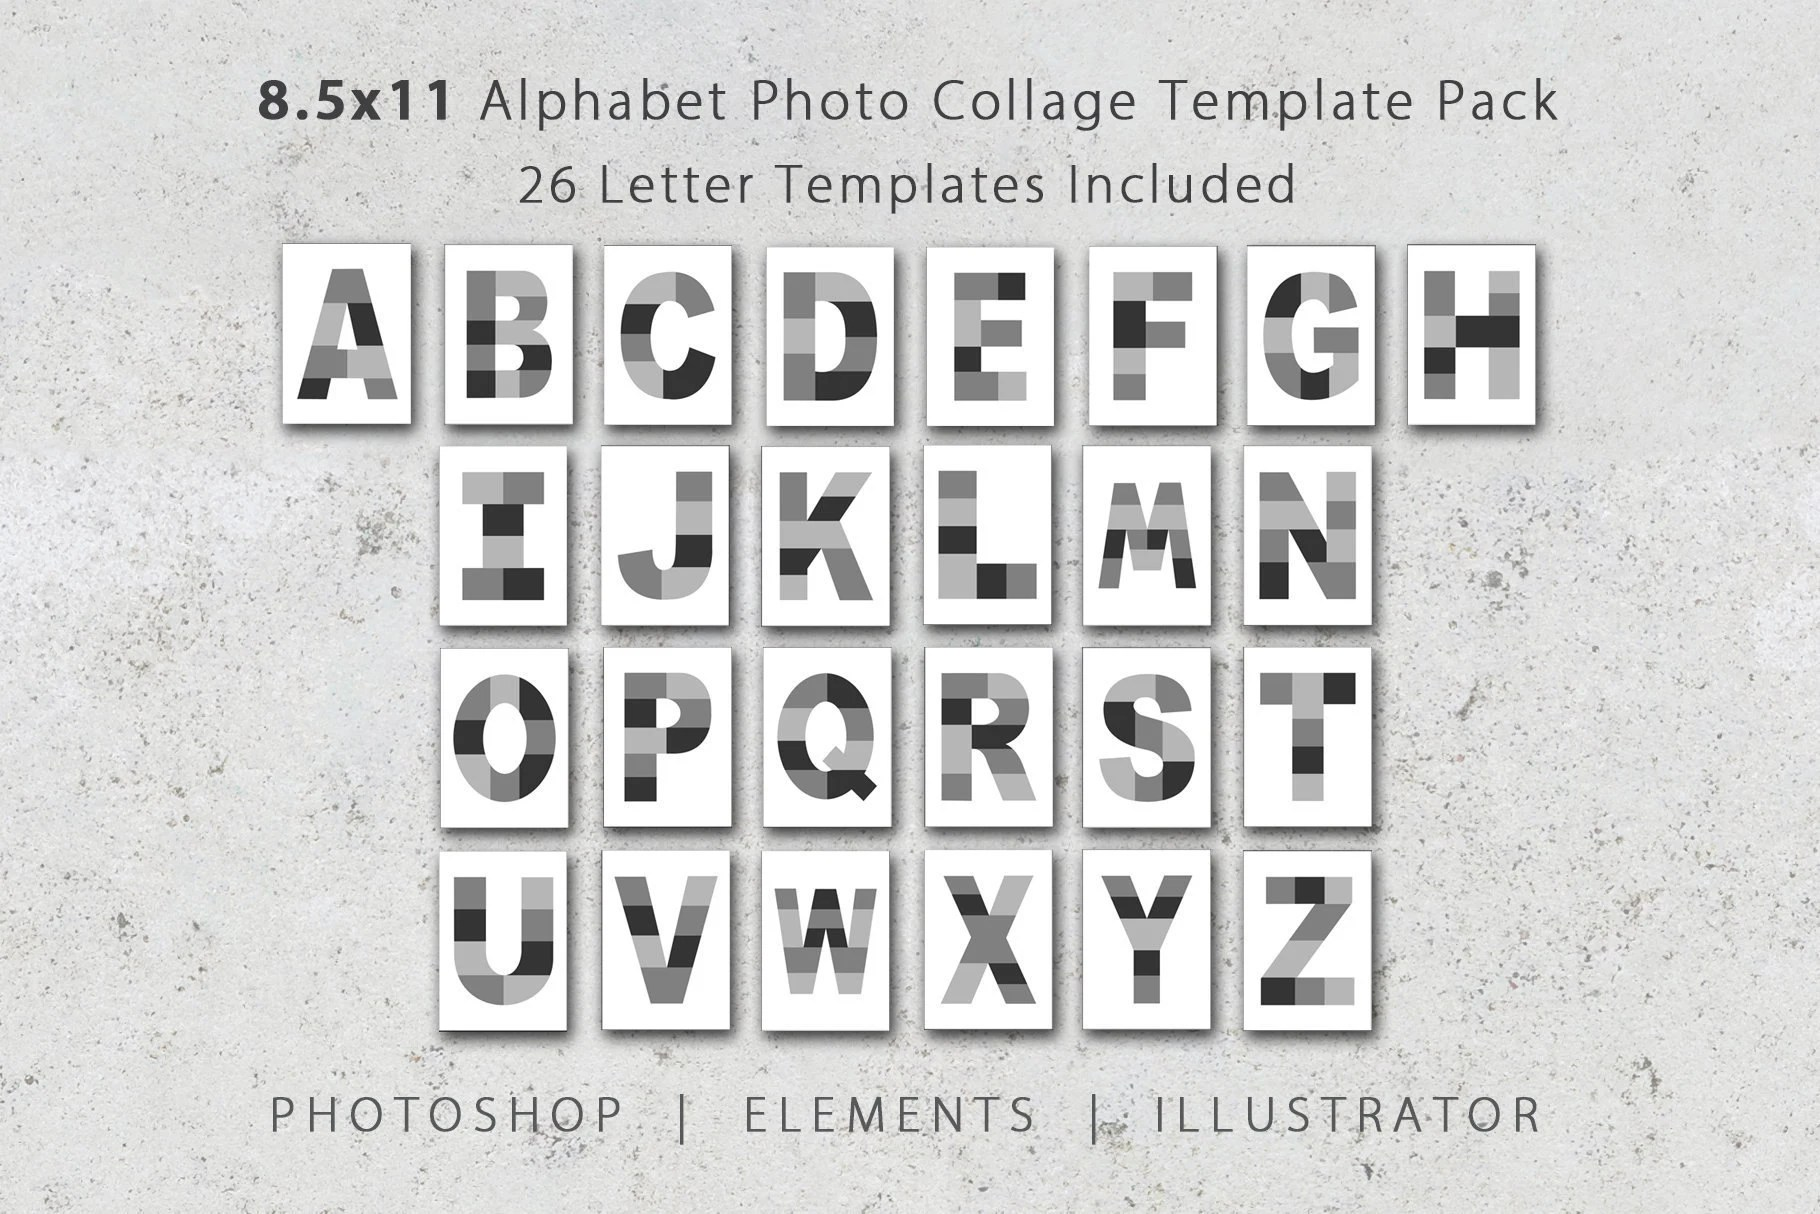 85x11 Photo Template pack Alphabet Template Pack Letter Etsy